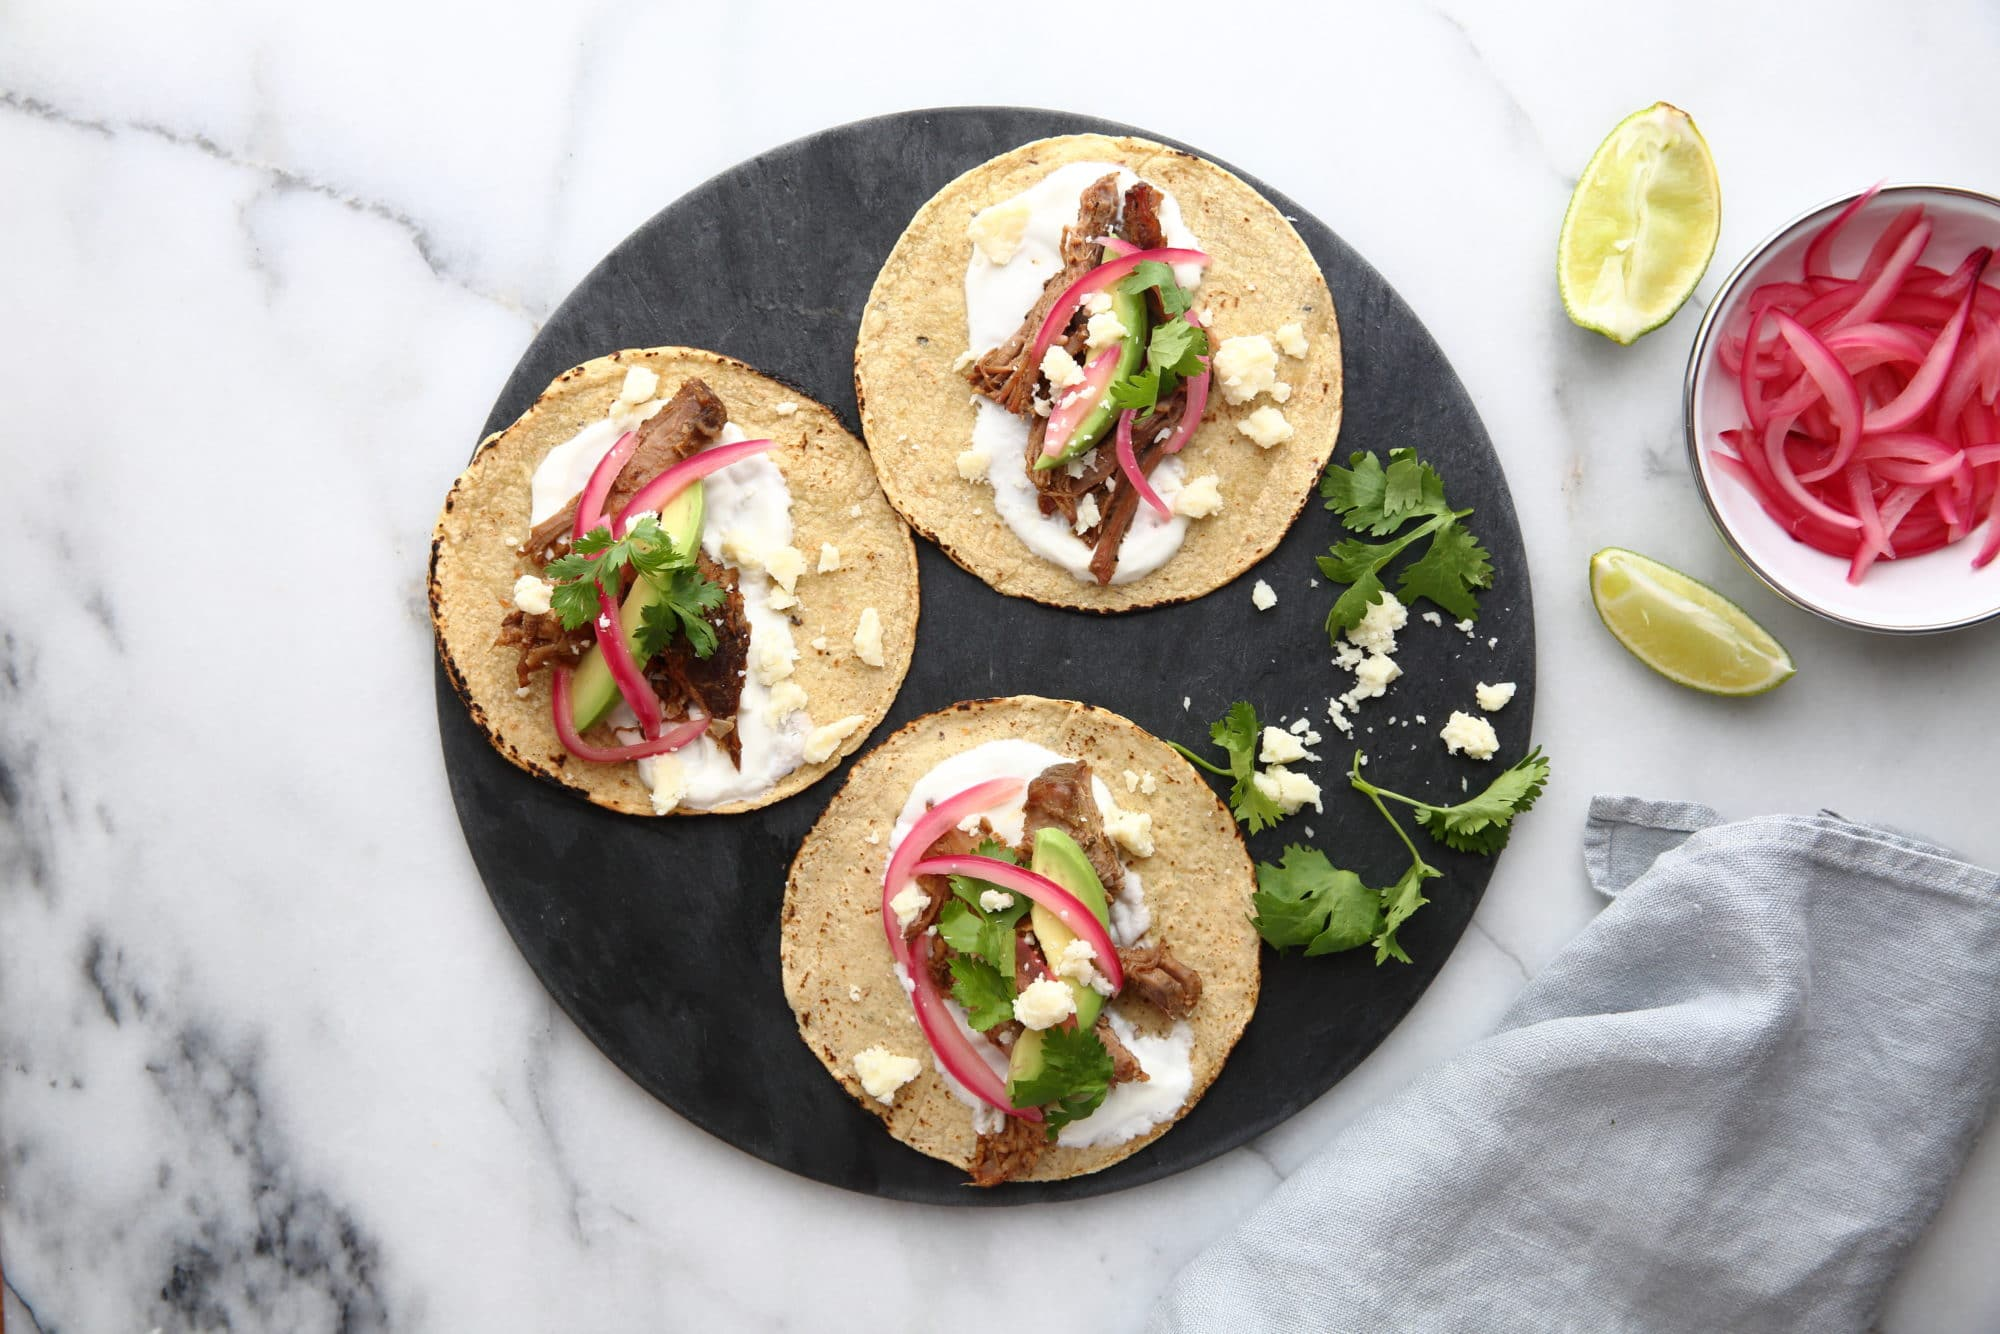 Slow cooker carnitas tacos on plate